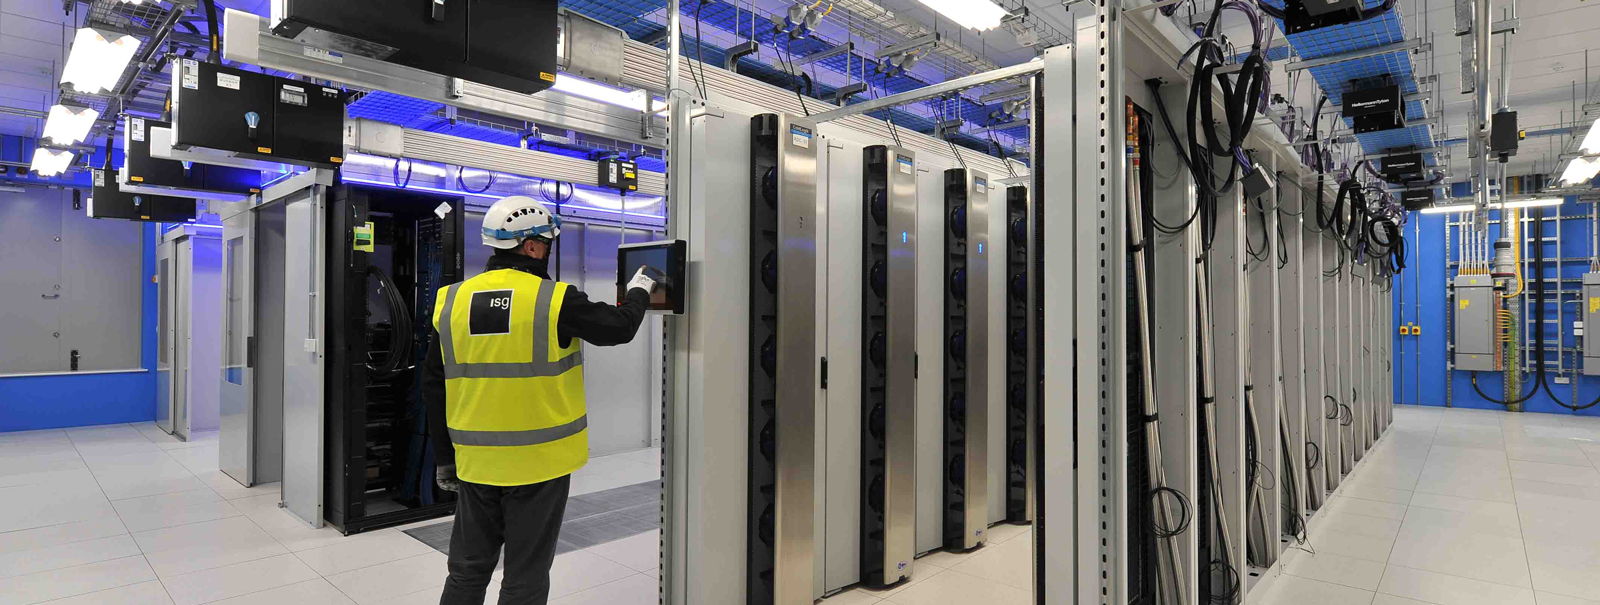 Genome Campus Data Centre